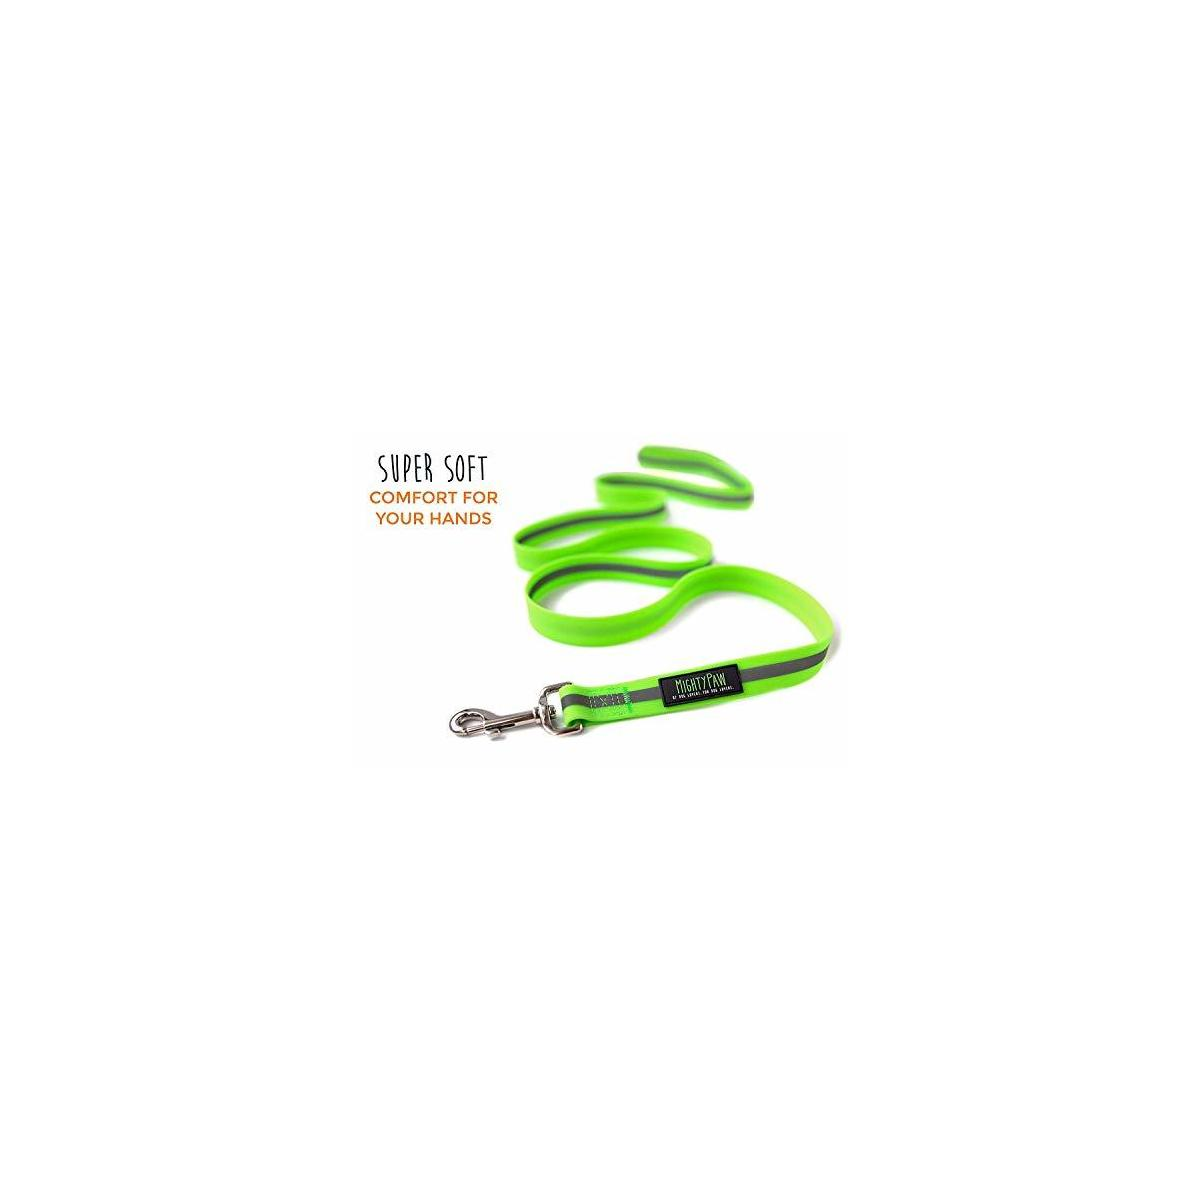 Mighty Paw Waterproof Dog Leash, Smell-Proof Active Dog Gear, Coated Nylon Webbing with Reflective Stripe.